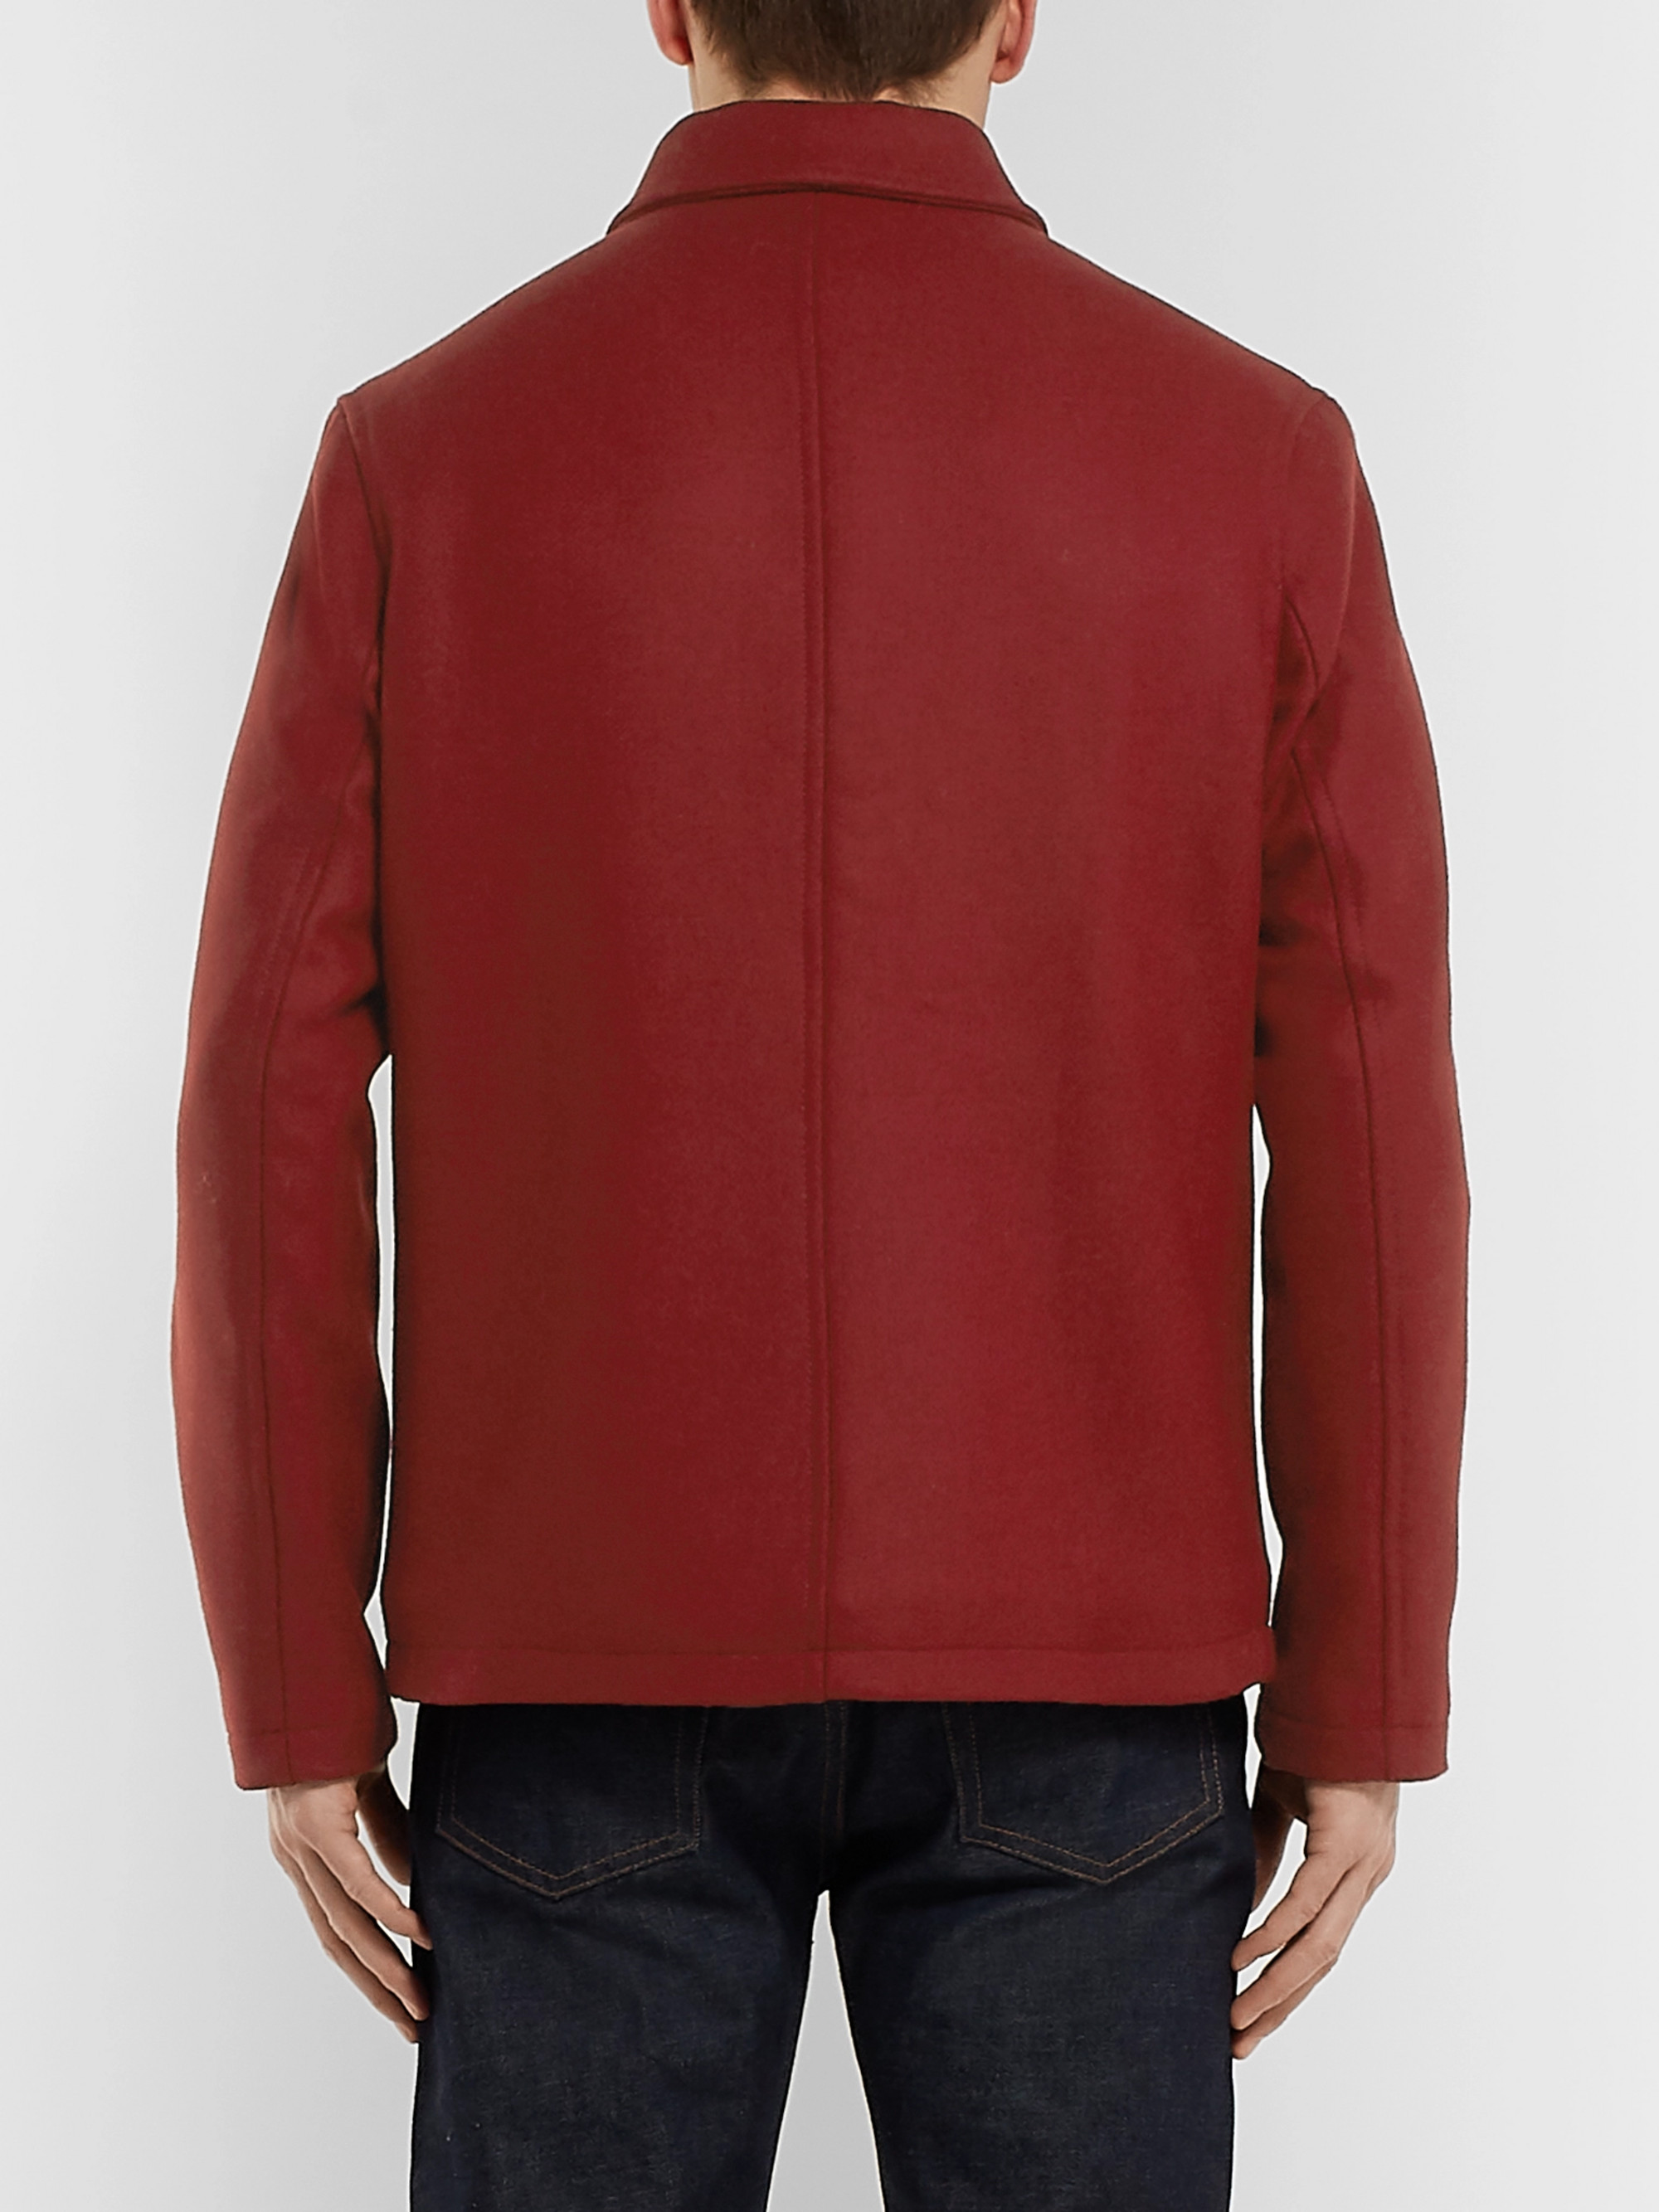 Albam Fleece-Lined Wool, Nylon and Cashmere-Blend Jacket